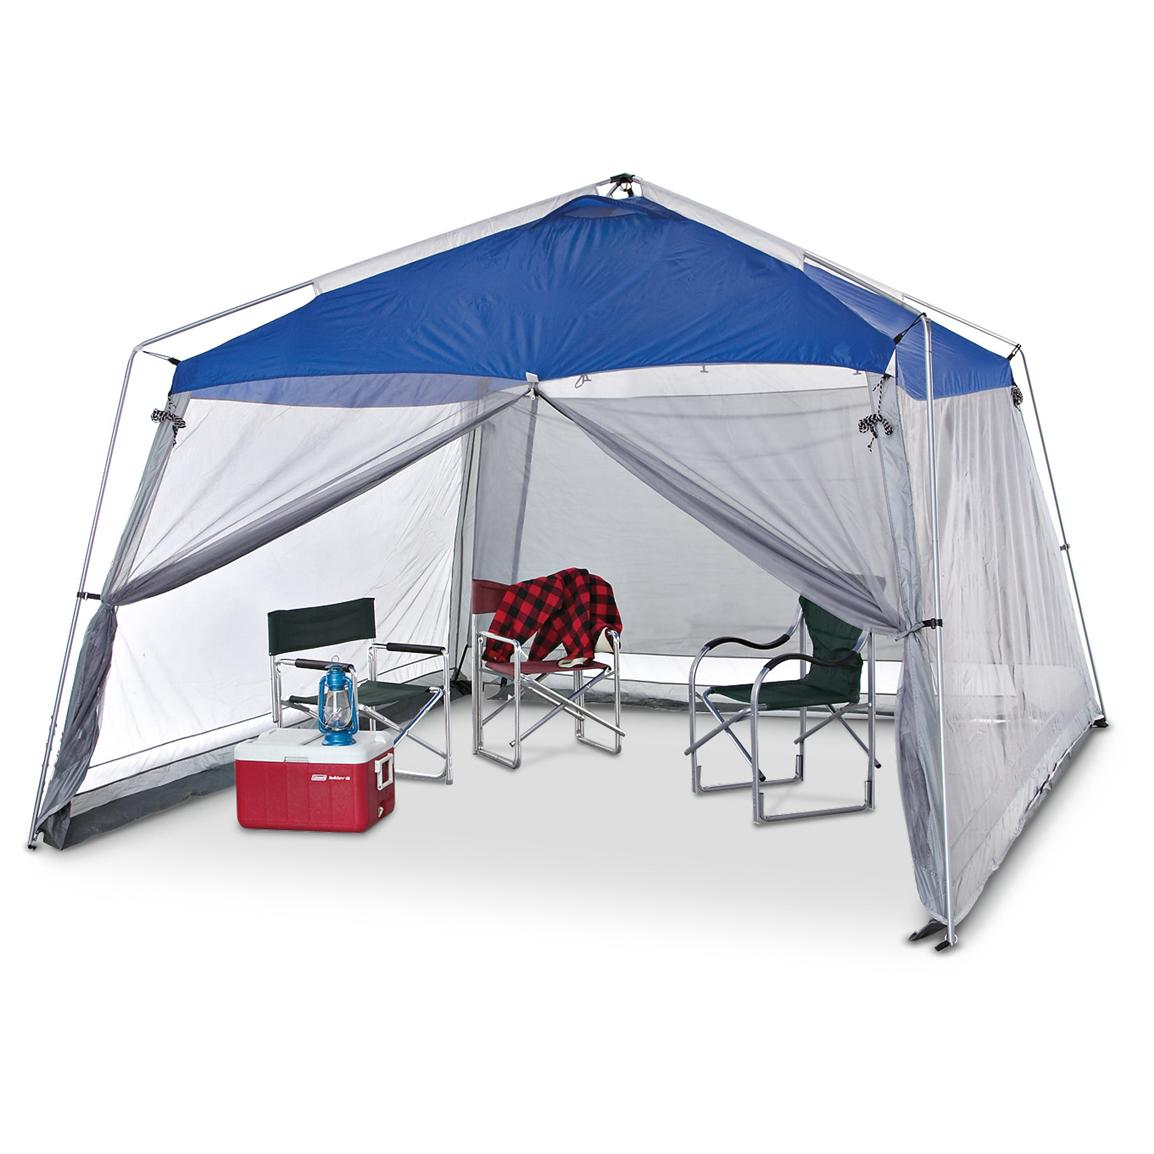 Northpole 174 12x12 Screenhouse Blue 152240 Canopy